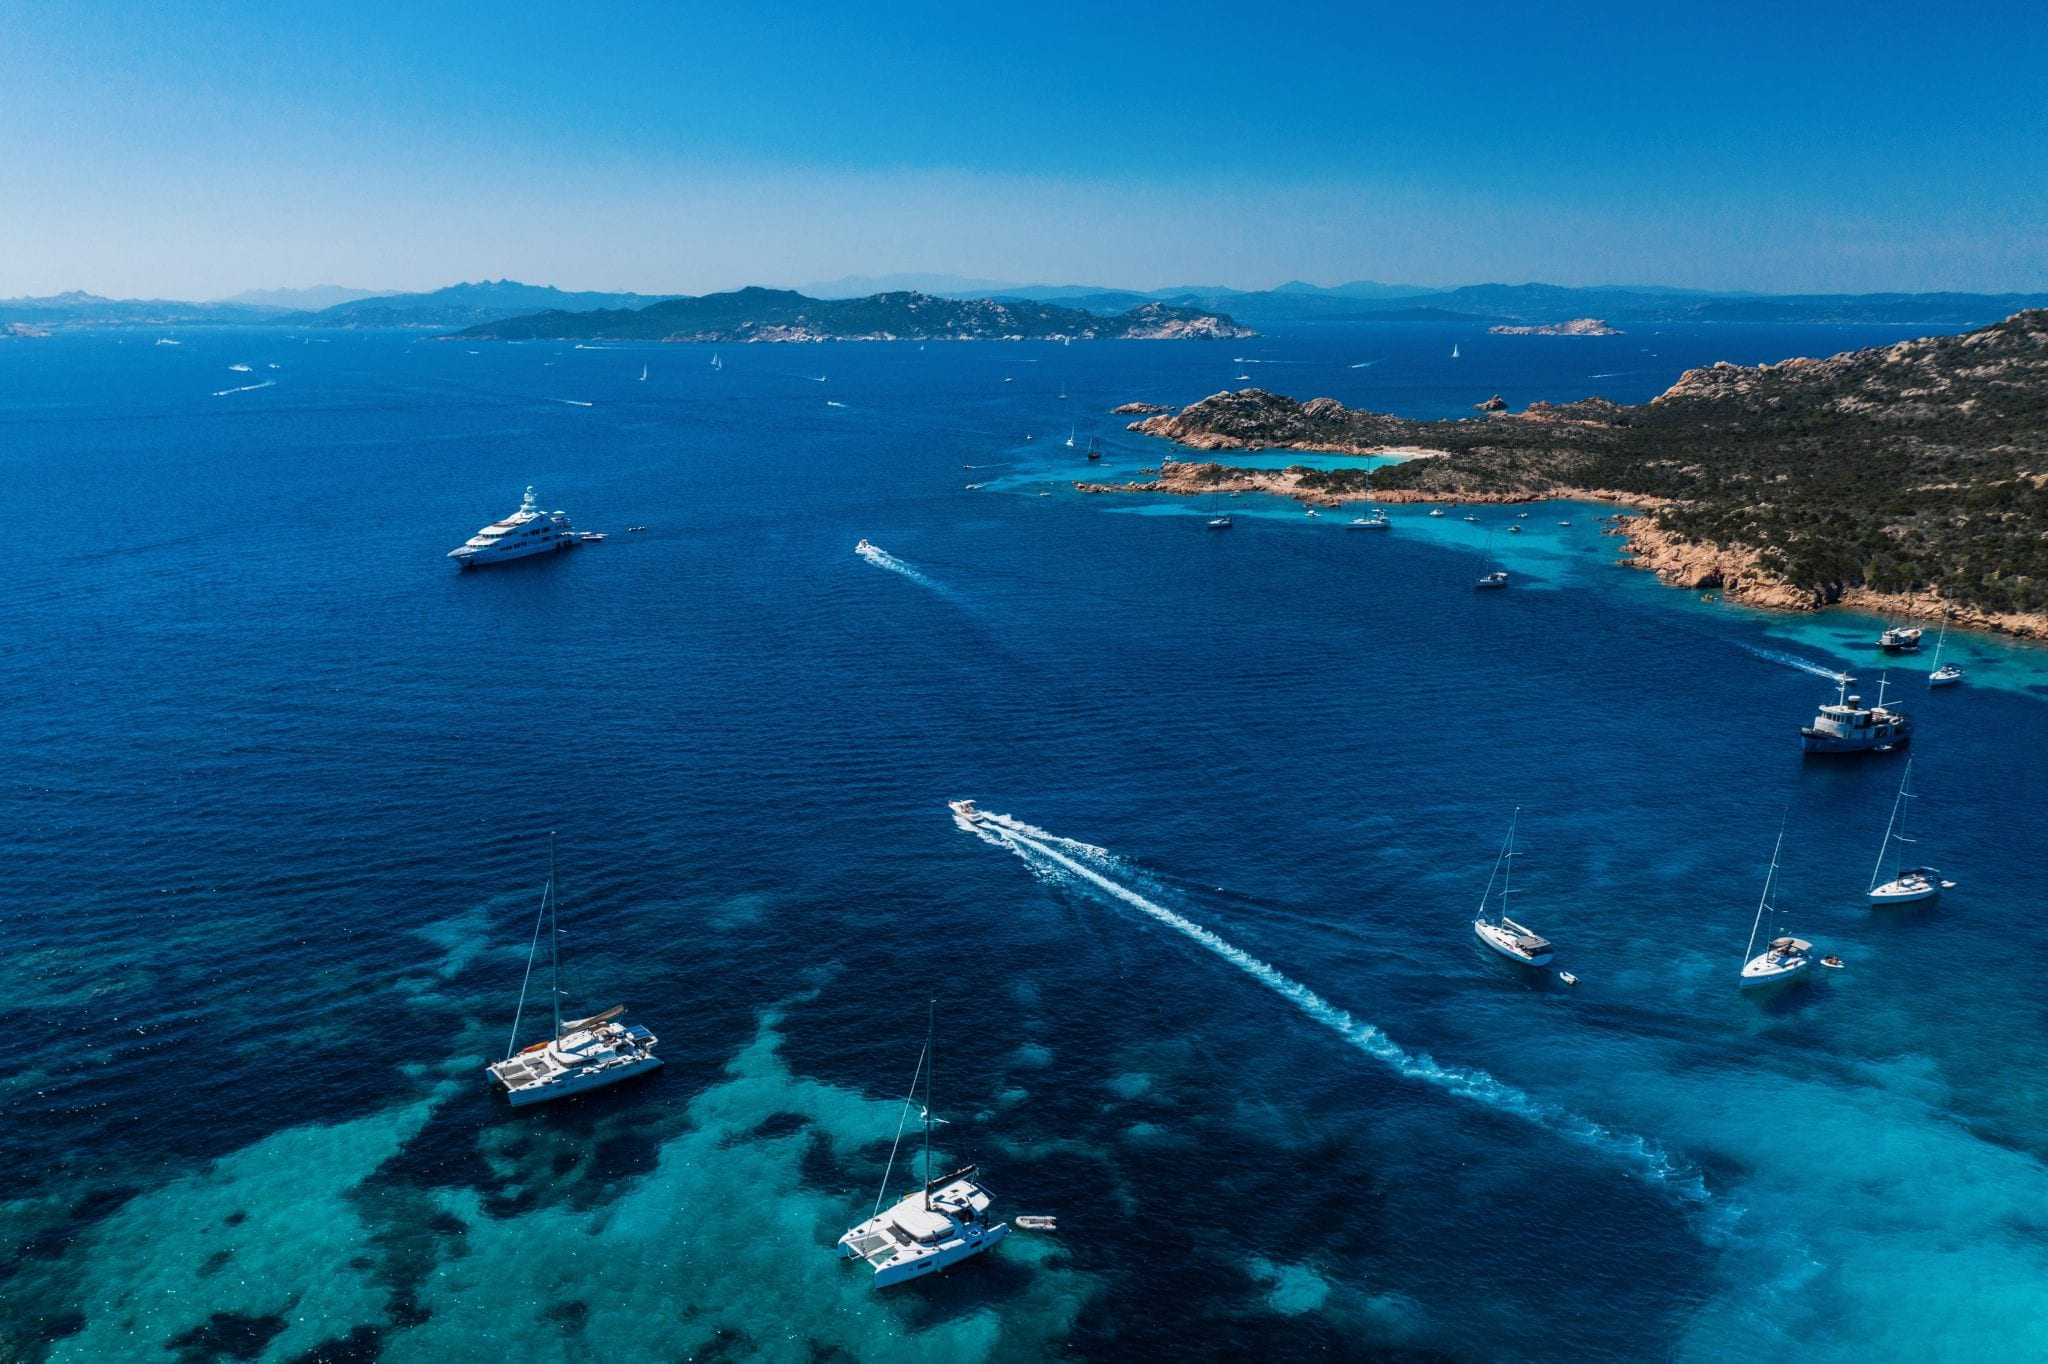 Top 5 beaches you shouldn't miss in Sardinia